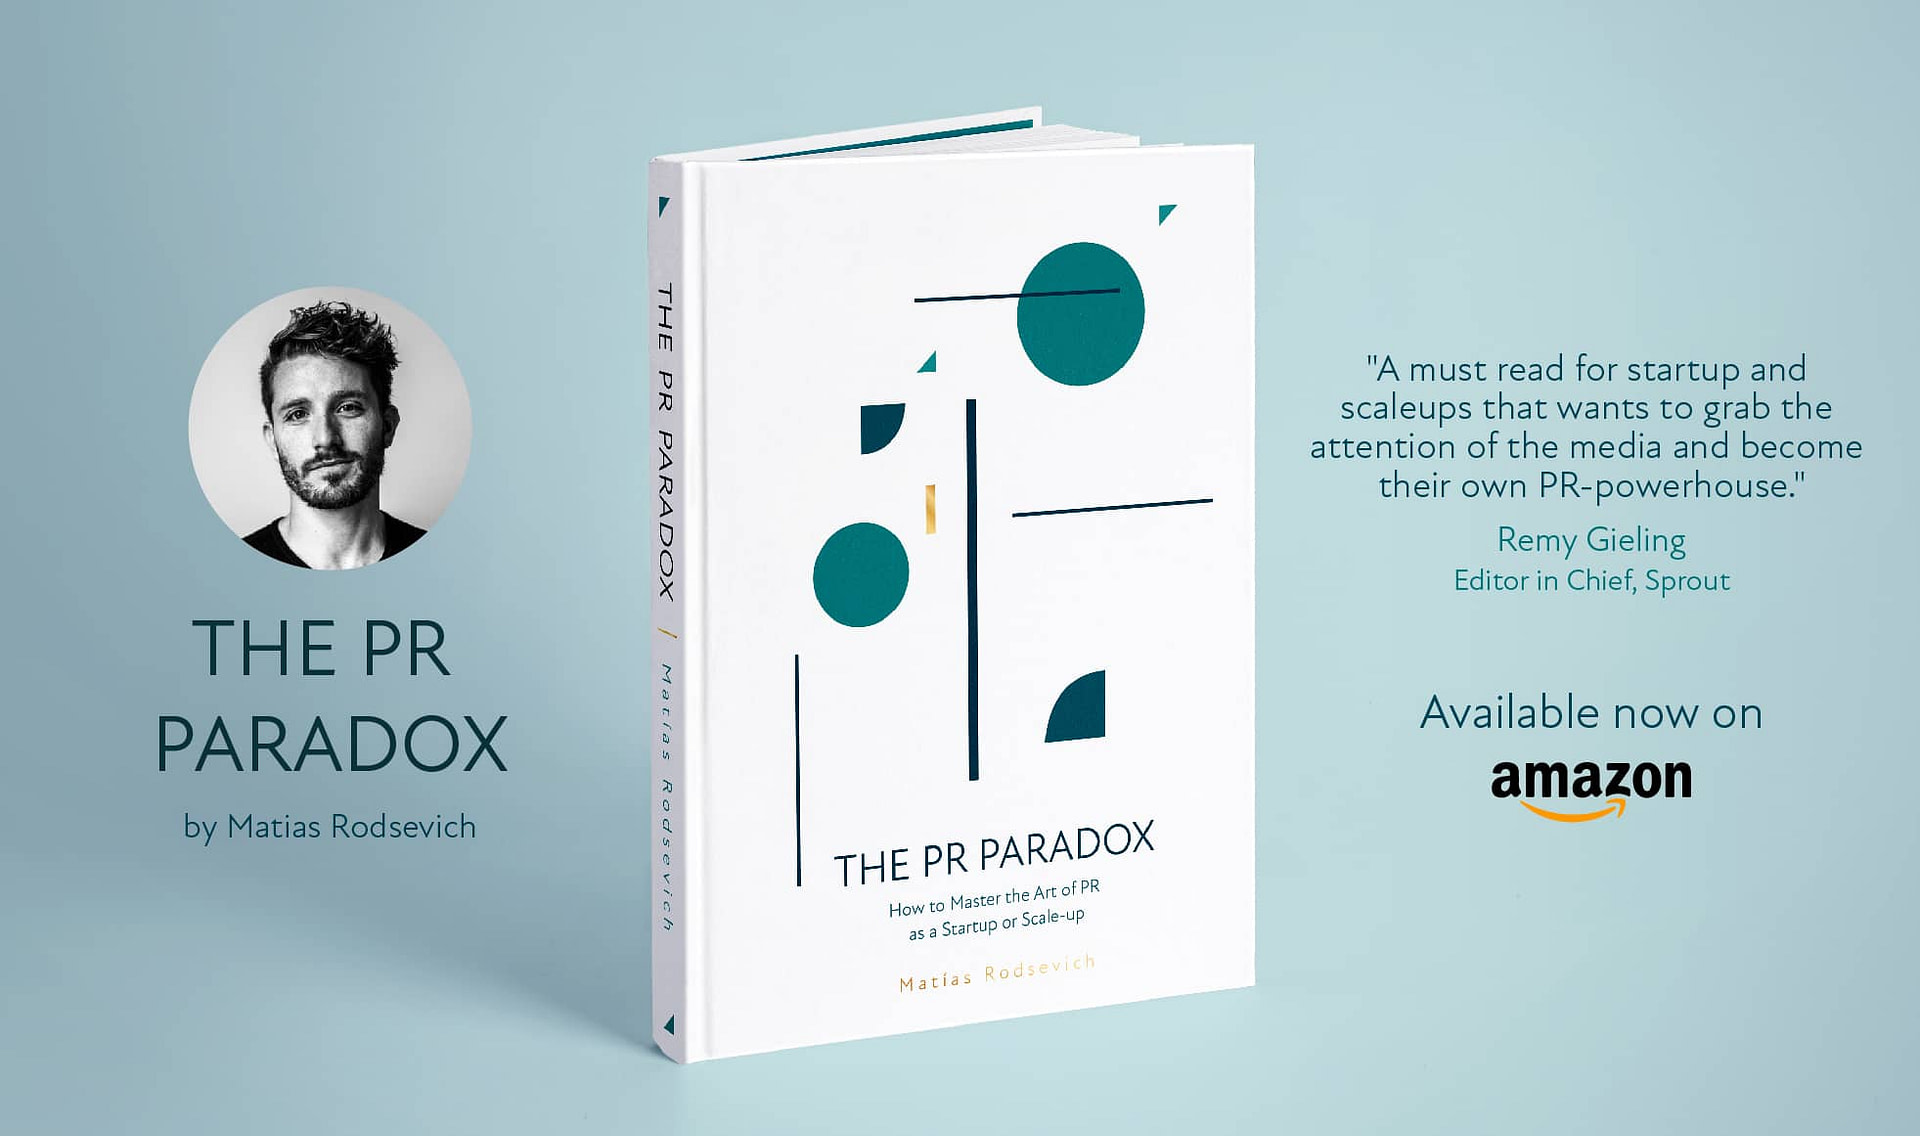 Banner for The PR Paradox, the first pr book, by Matias Rodsevich.